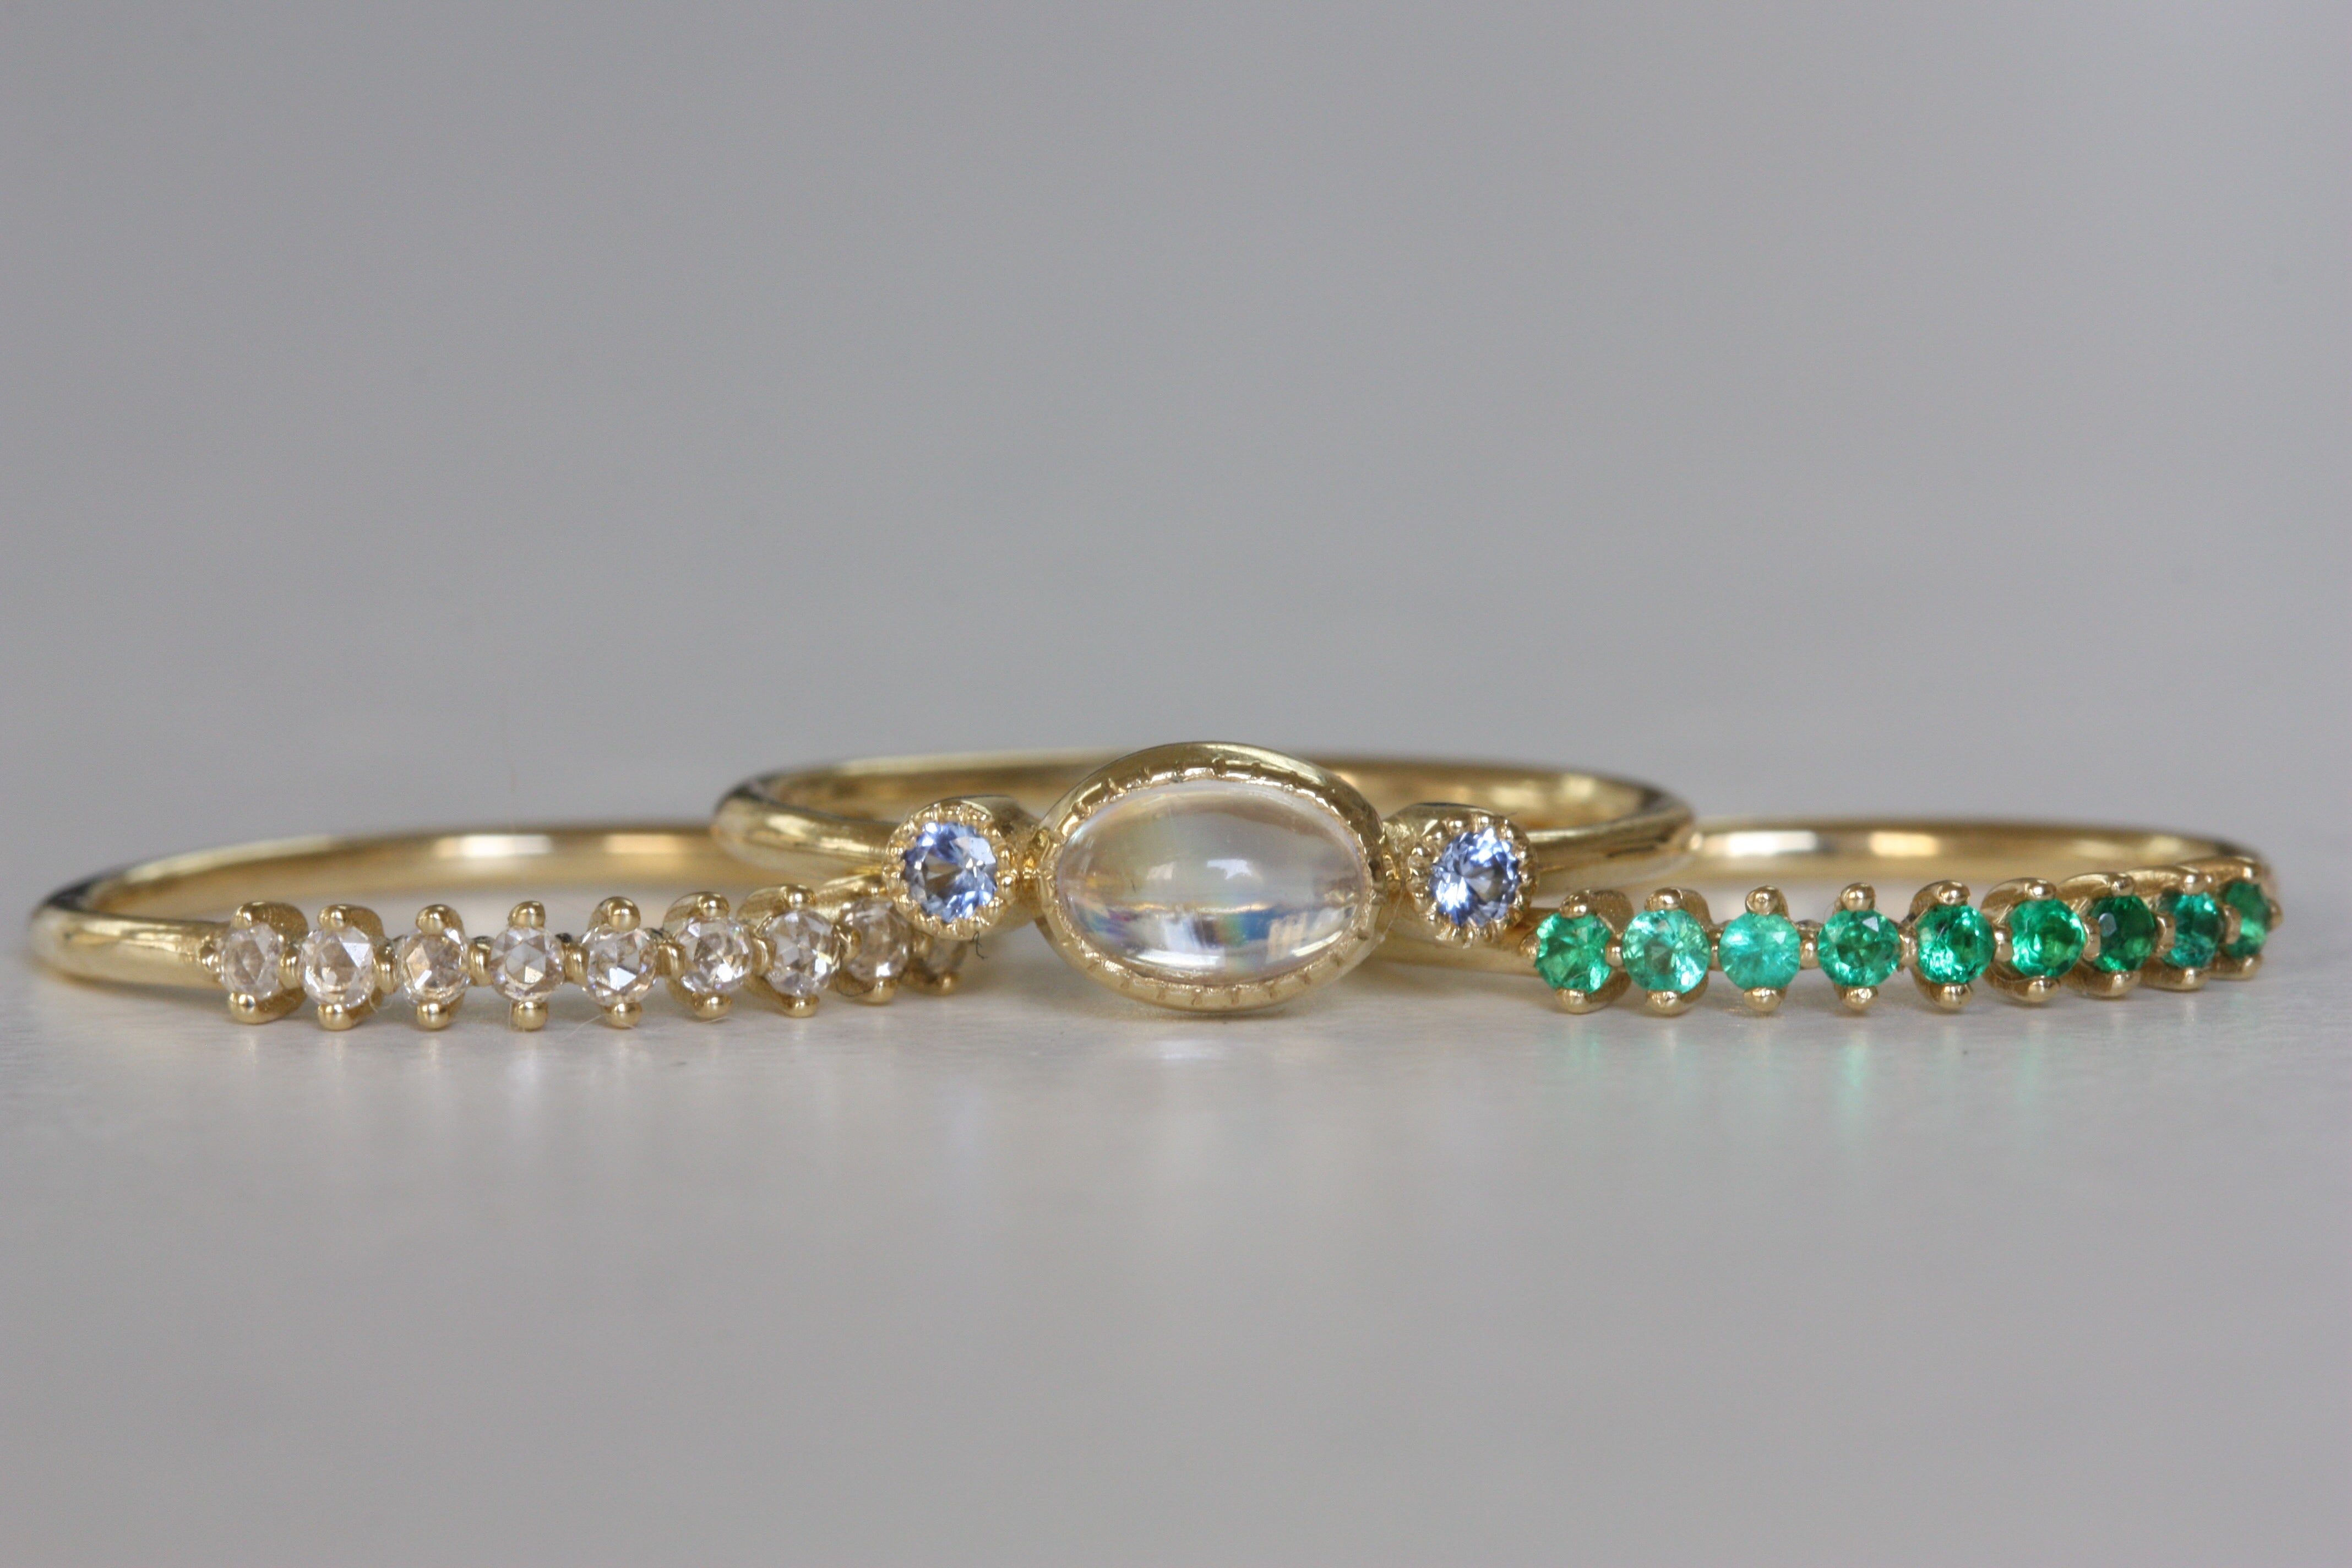 detail, Diamond Lace Ring, Moonstone Sapphire Reese Ring and Emerald Lace RIng.